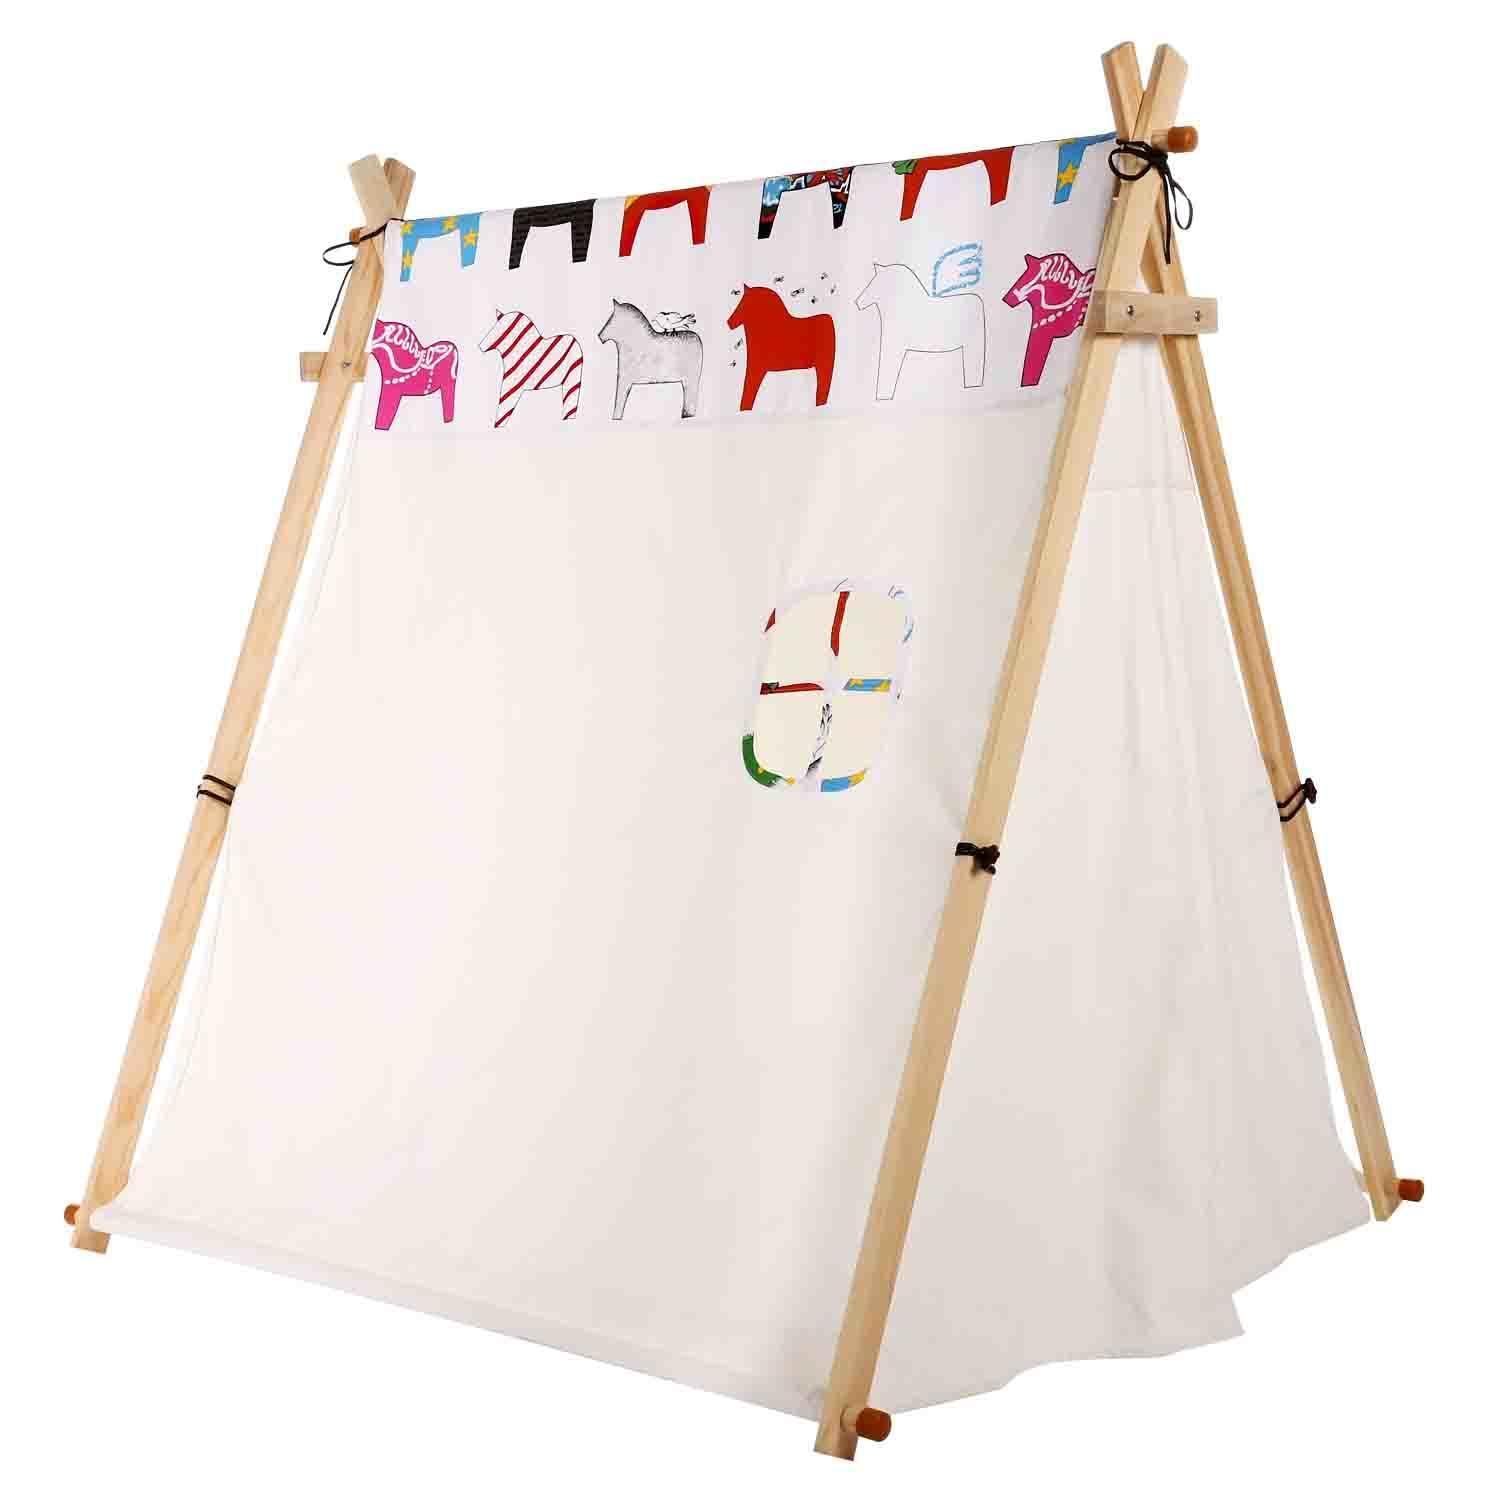 A frame Child Kids Teepee Tent Beige Children Playhouse Horse Print with